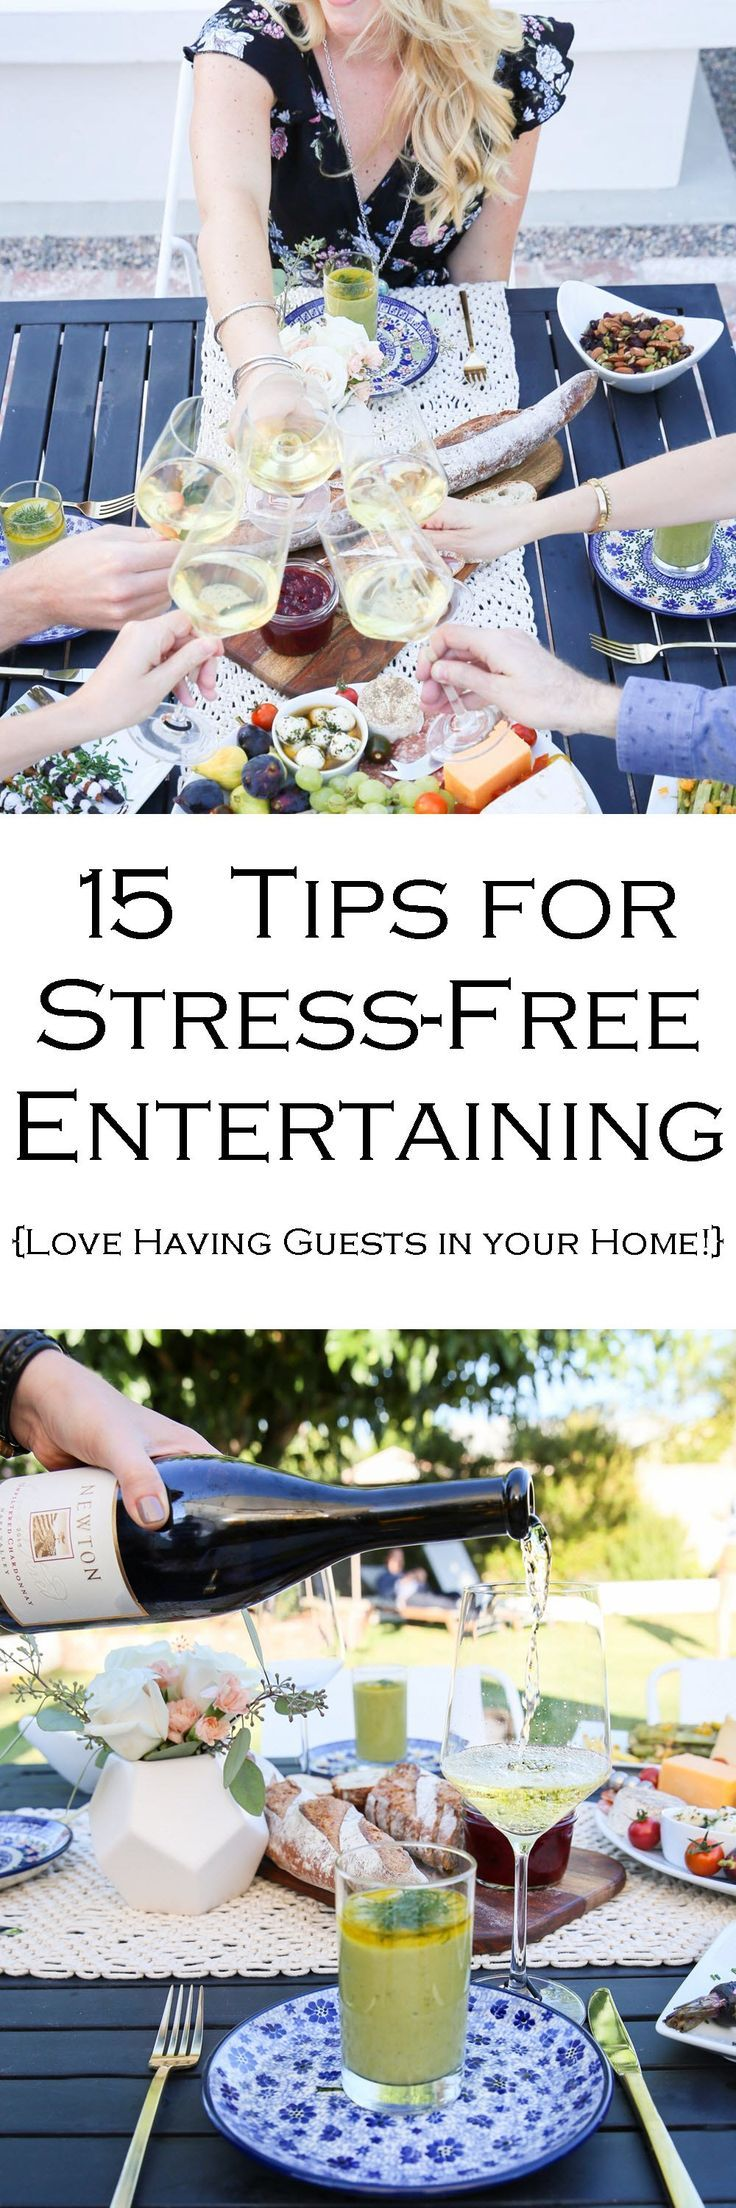 15 Easy Entertaining Tips for Dinner Guests | Party guests, Dinners ...